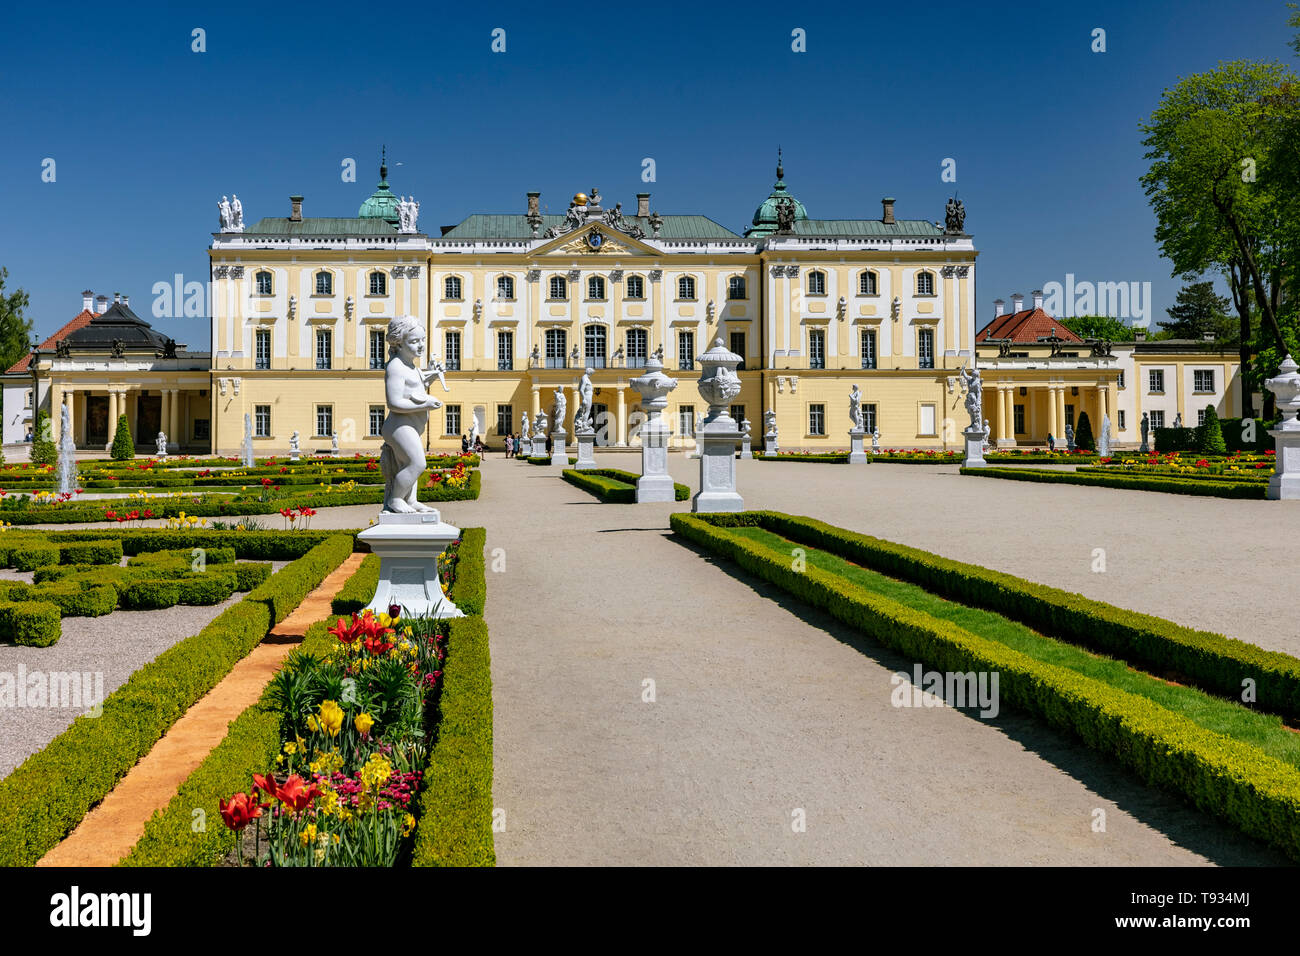 The Branicki Baroque palace and Medical University in Bialystok, Podlasie, Poland - Stock Image